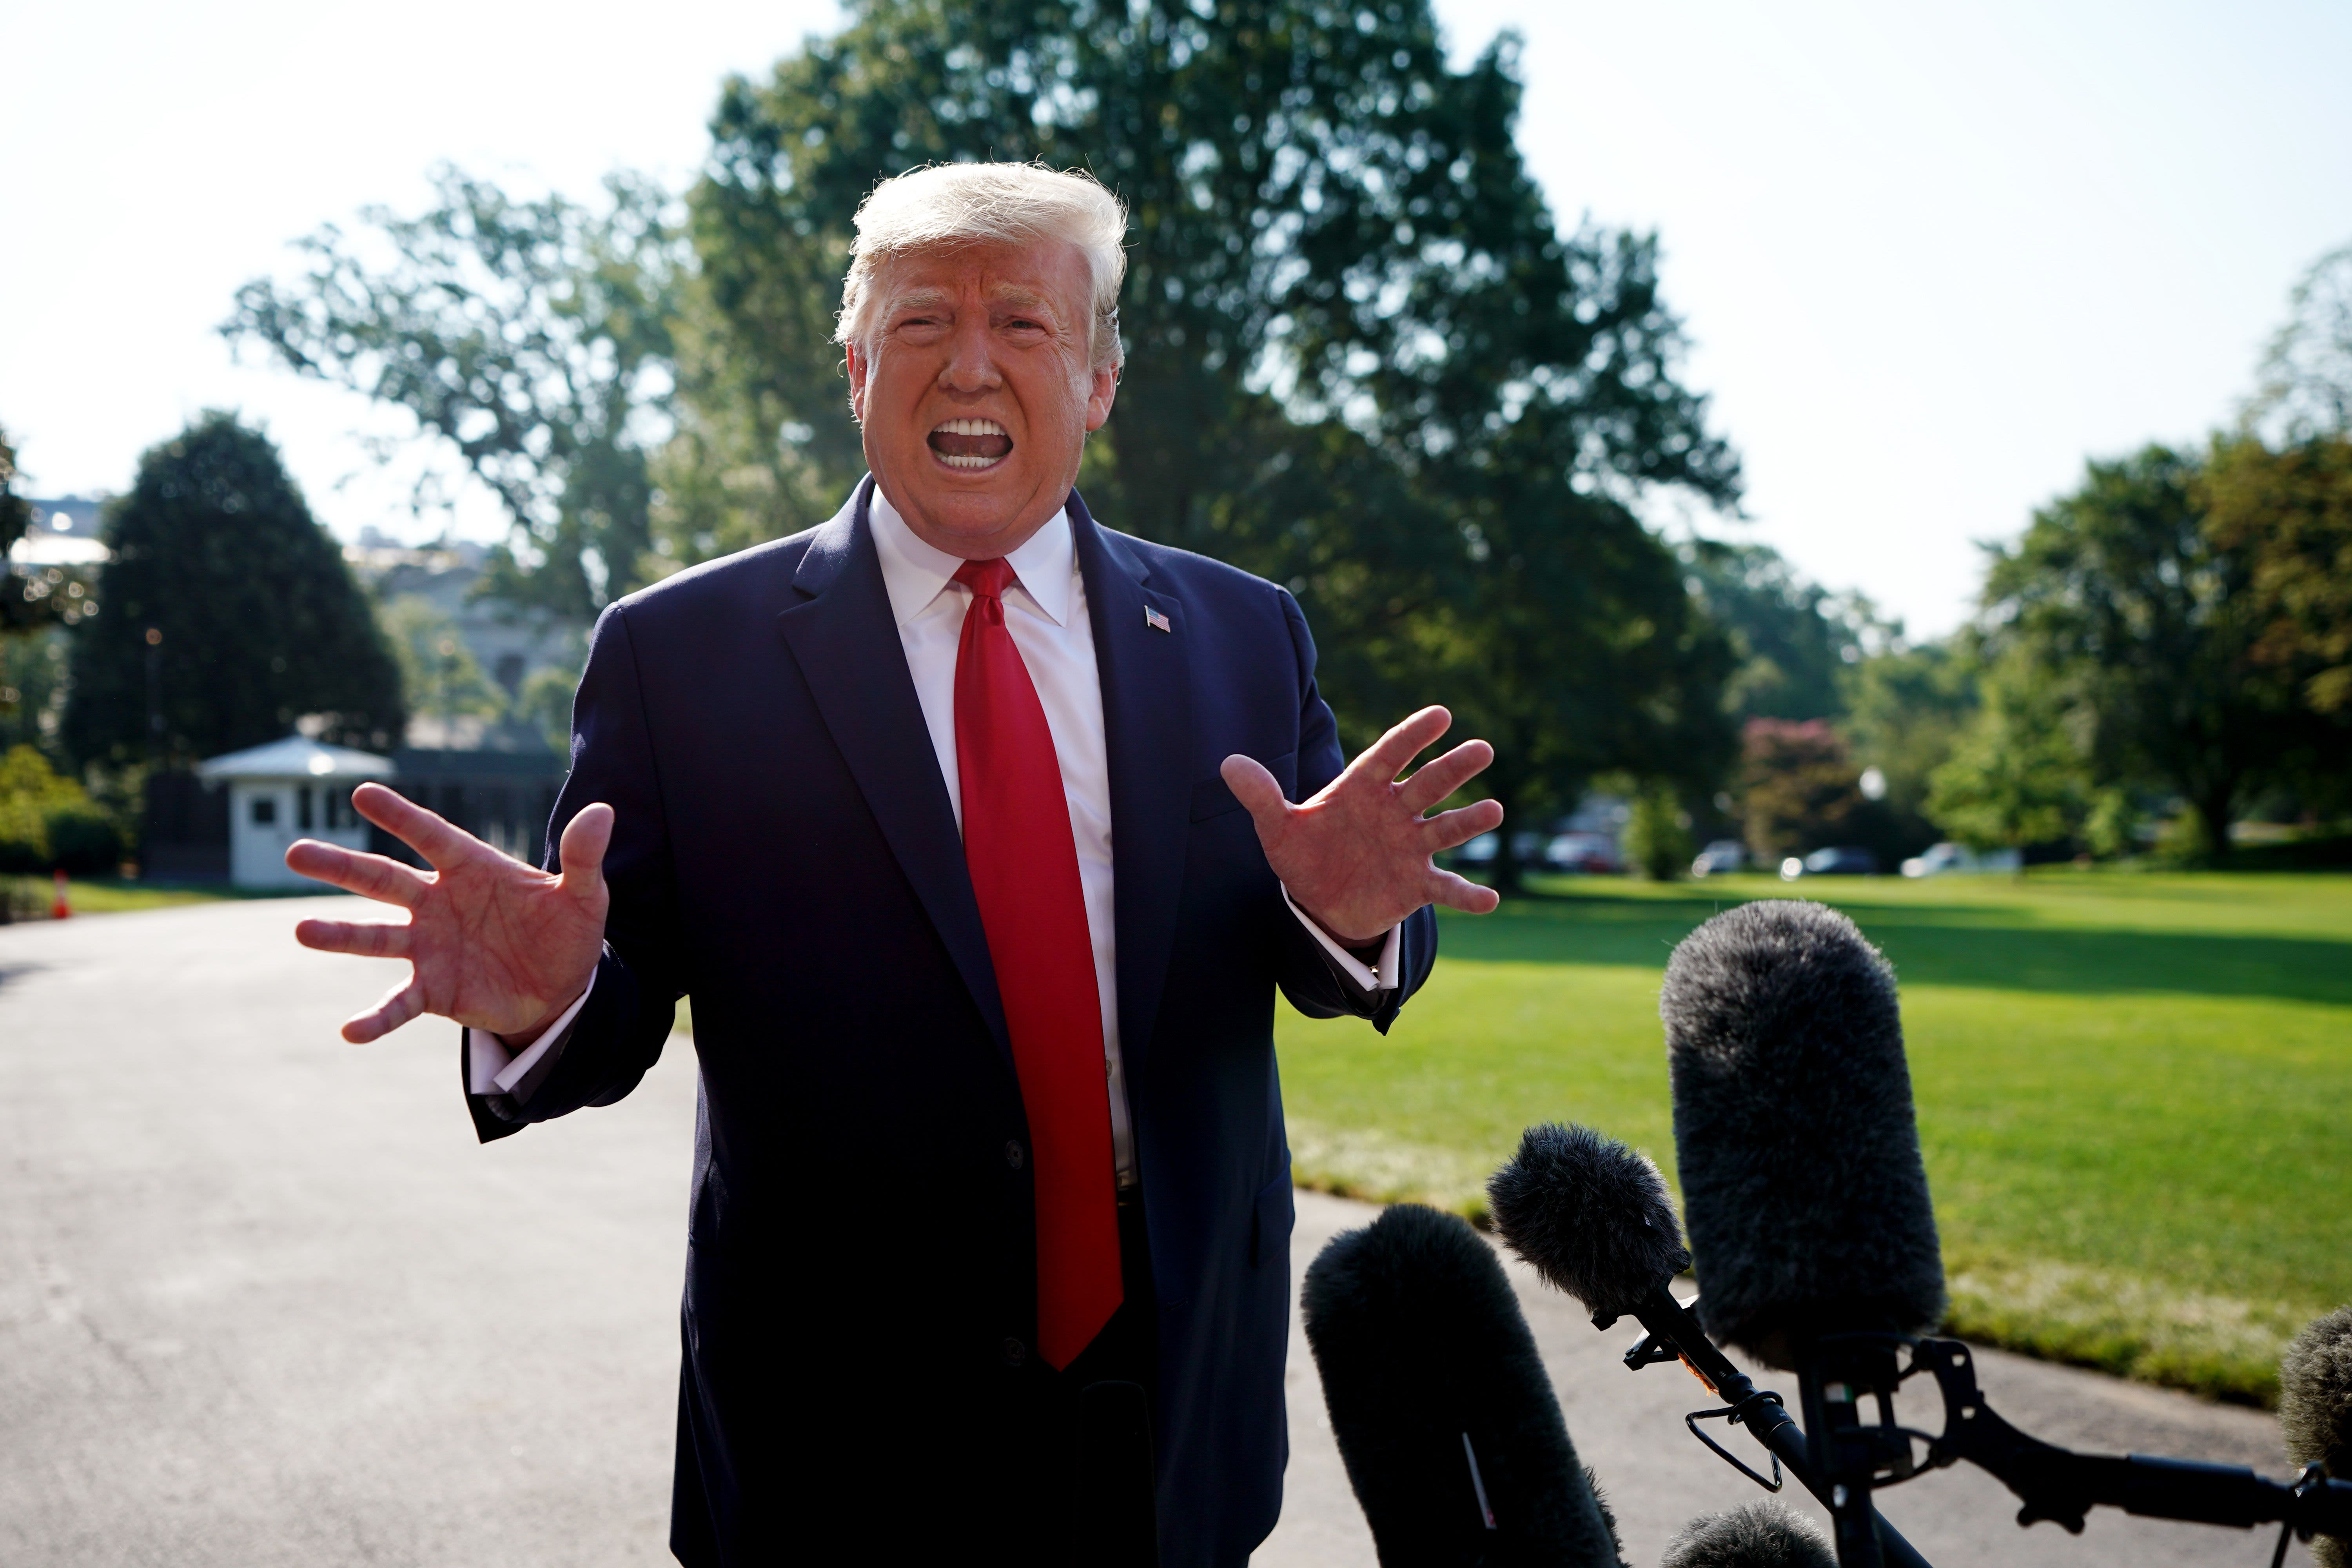 Trump says he'll call Congress back to Washington if GOP and Dems get 'close' on gun reform plan